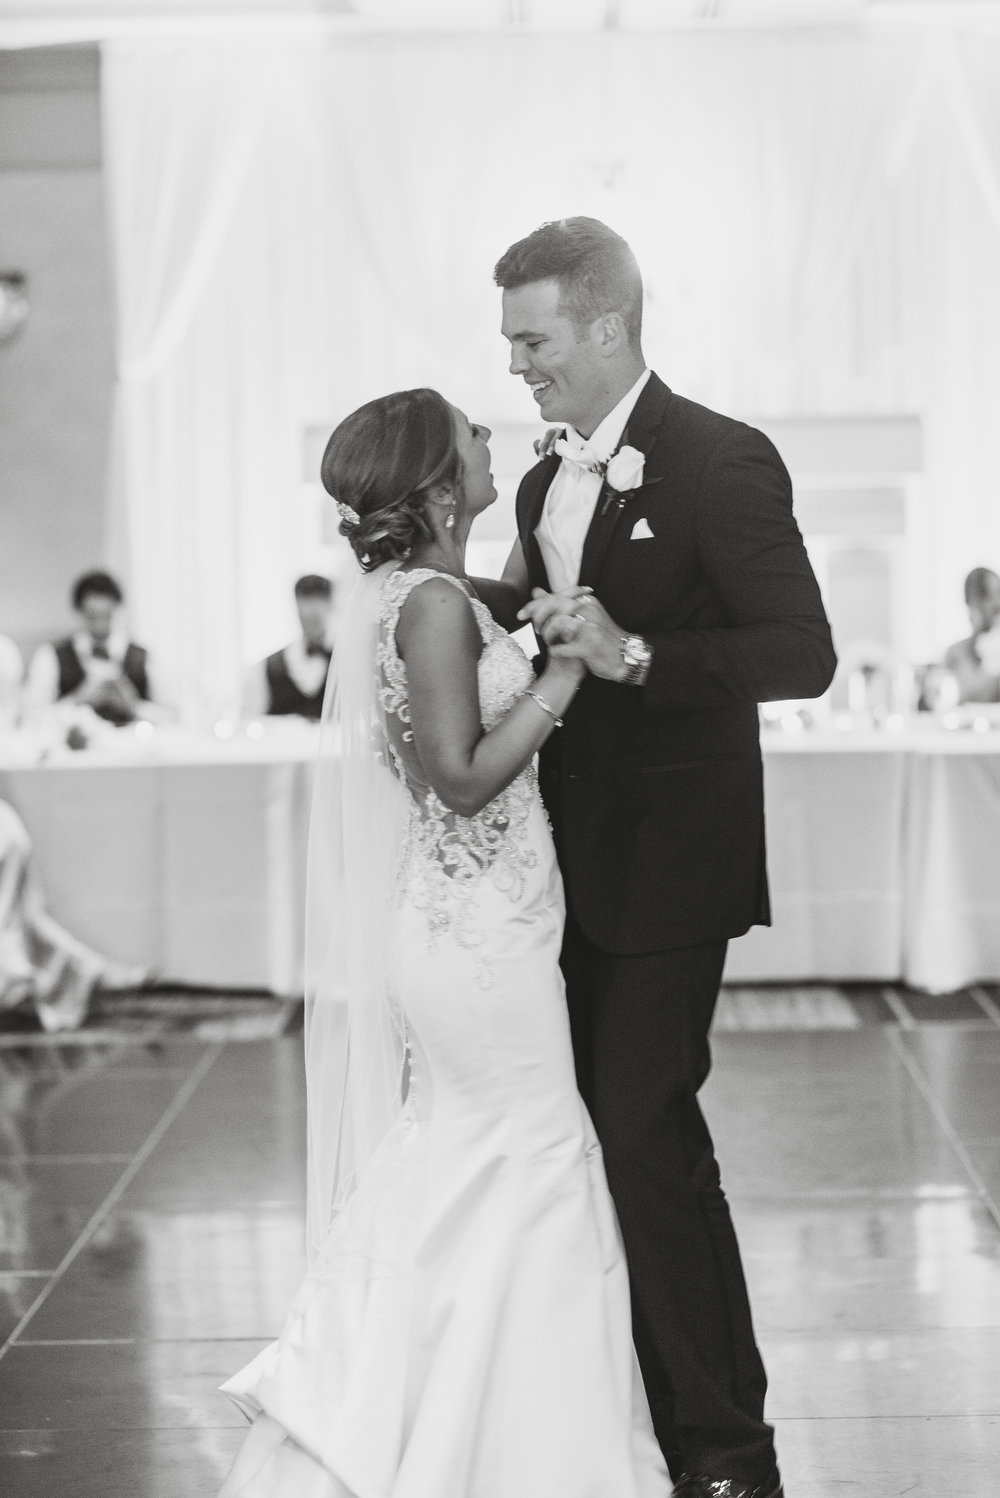 Kevin + Kayleigh Schulte- dancing to Better Together by Jack Johnson